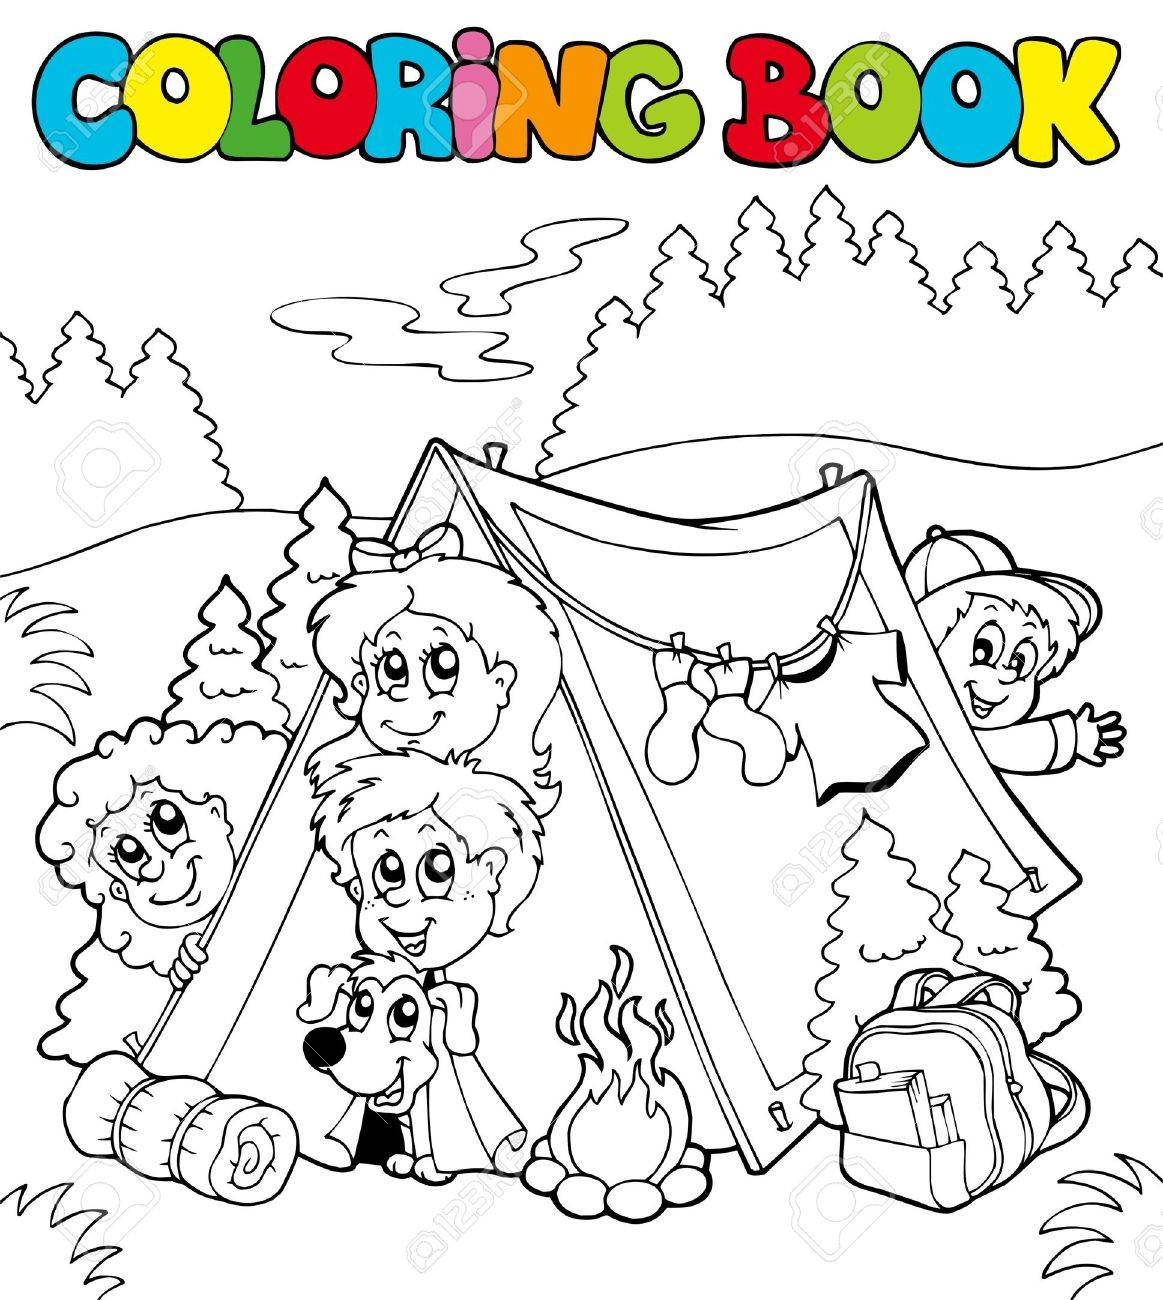 Kids coloring book - Coloring Book With Camping Kids Illustration Stock Vector 8145342